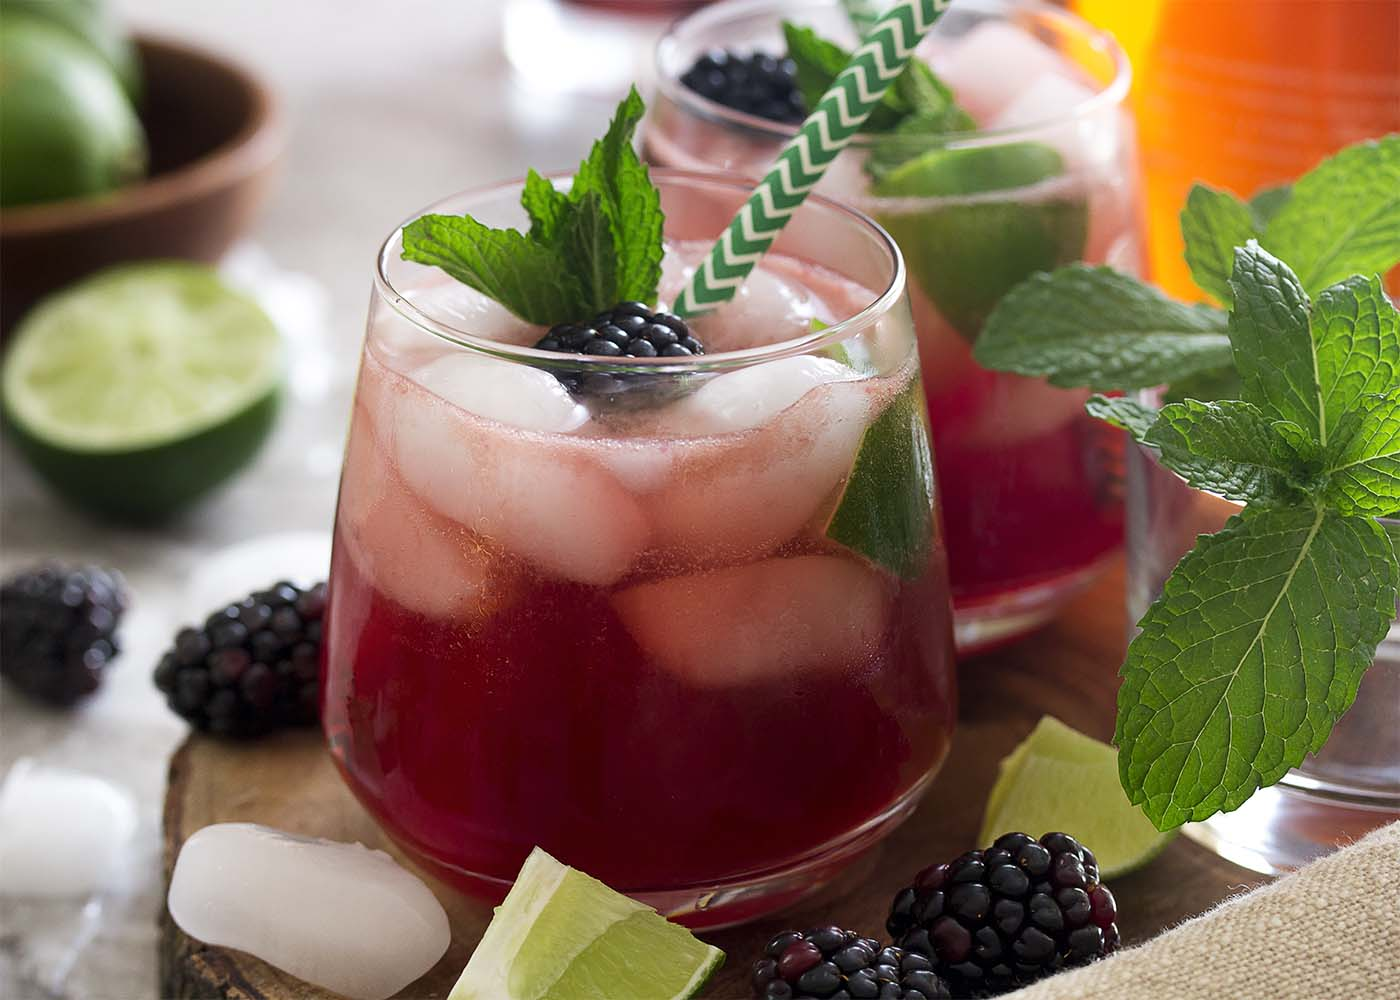 Side view of a blackberry mojito with a straw in the glass. Blackberries and lime scattered about.